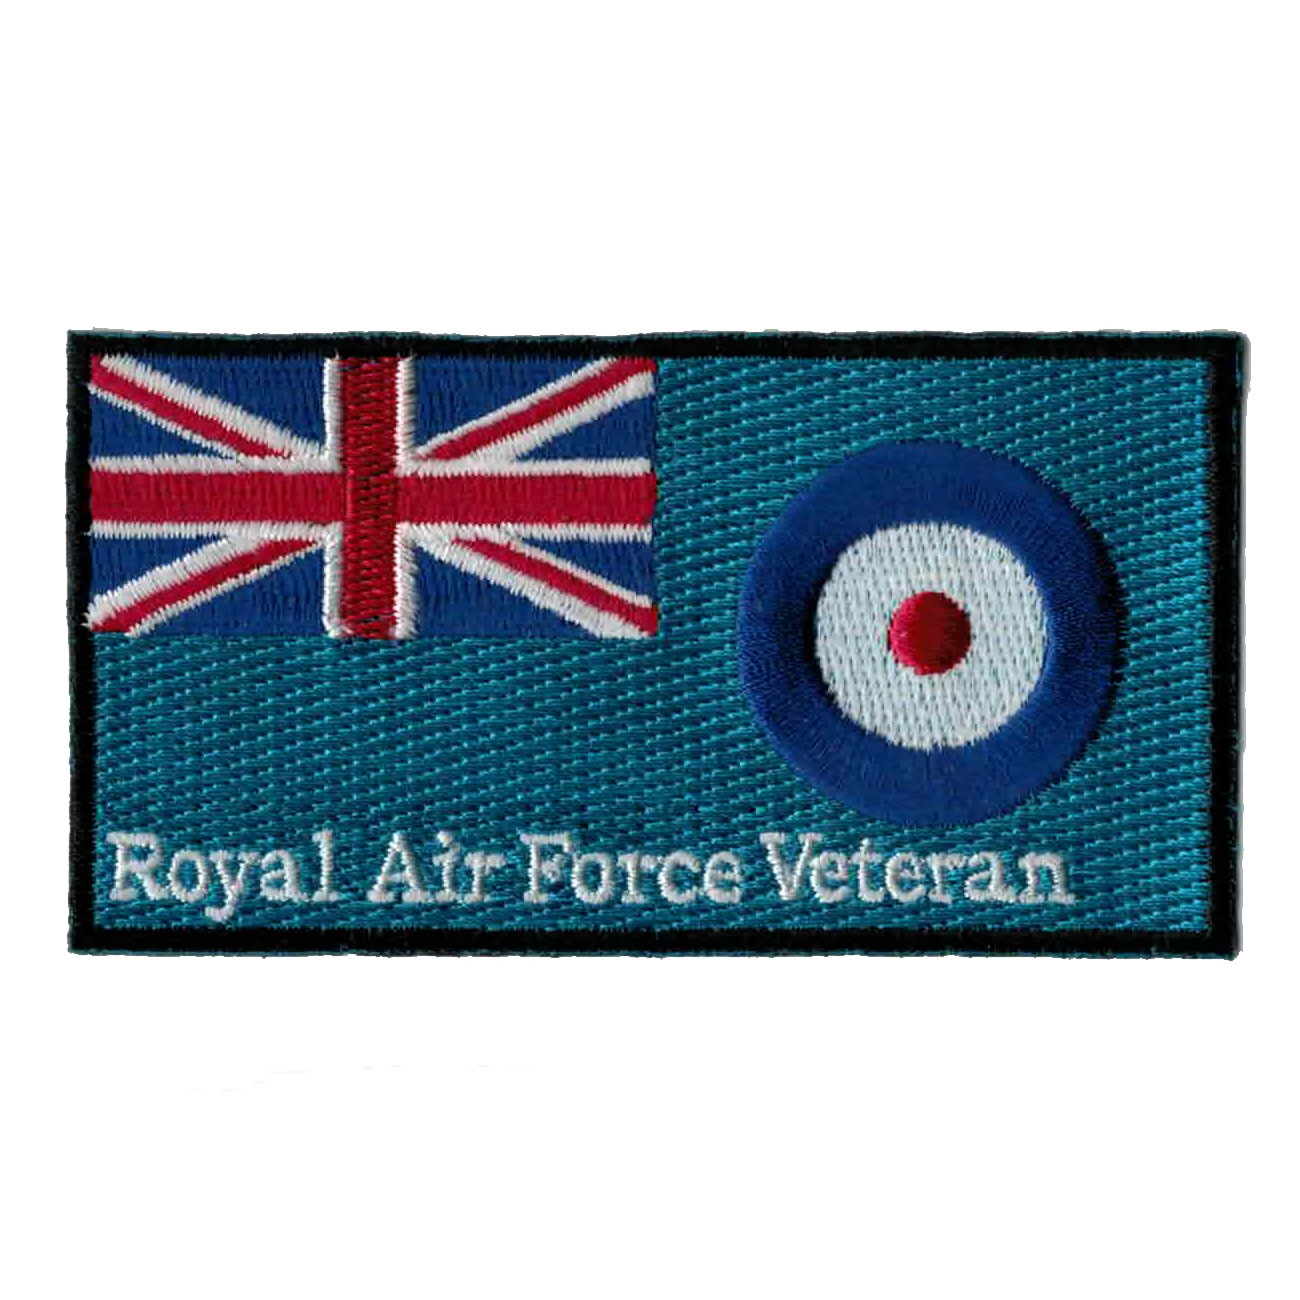 RAF Veteran patch